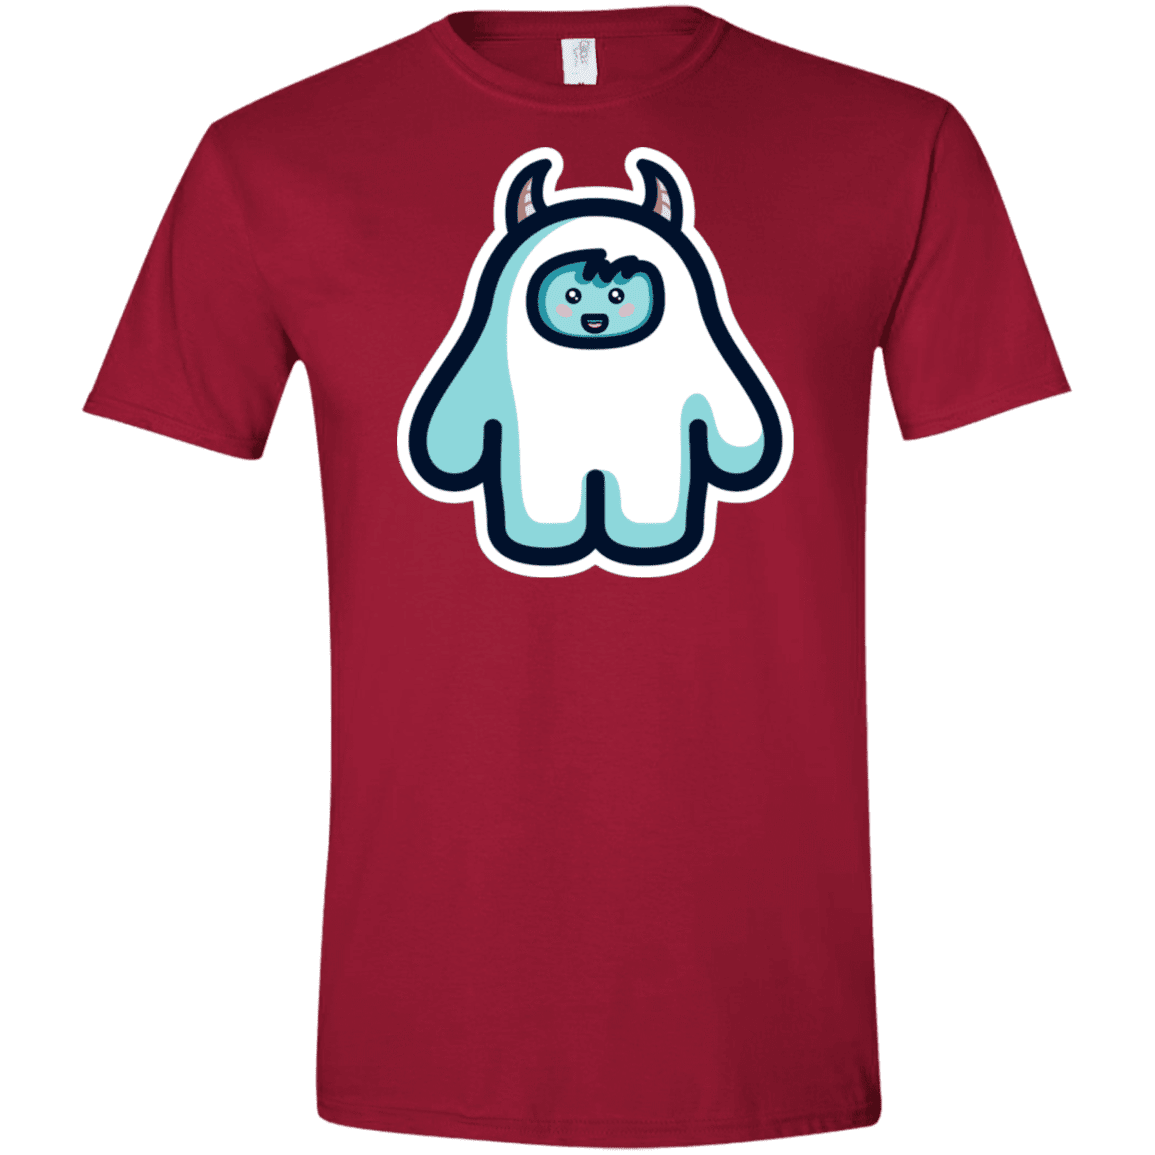 T-Shirts Cardinal Red / S Kawaii Cute Yeti Men's Semi-Fitted Softstyle